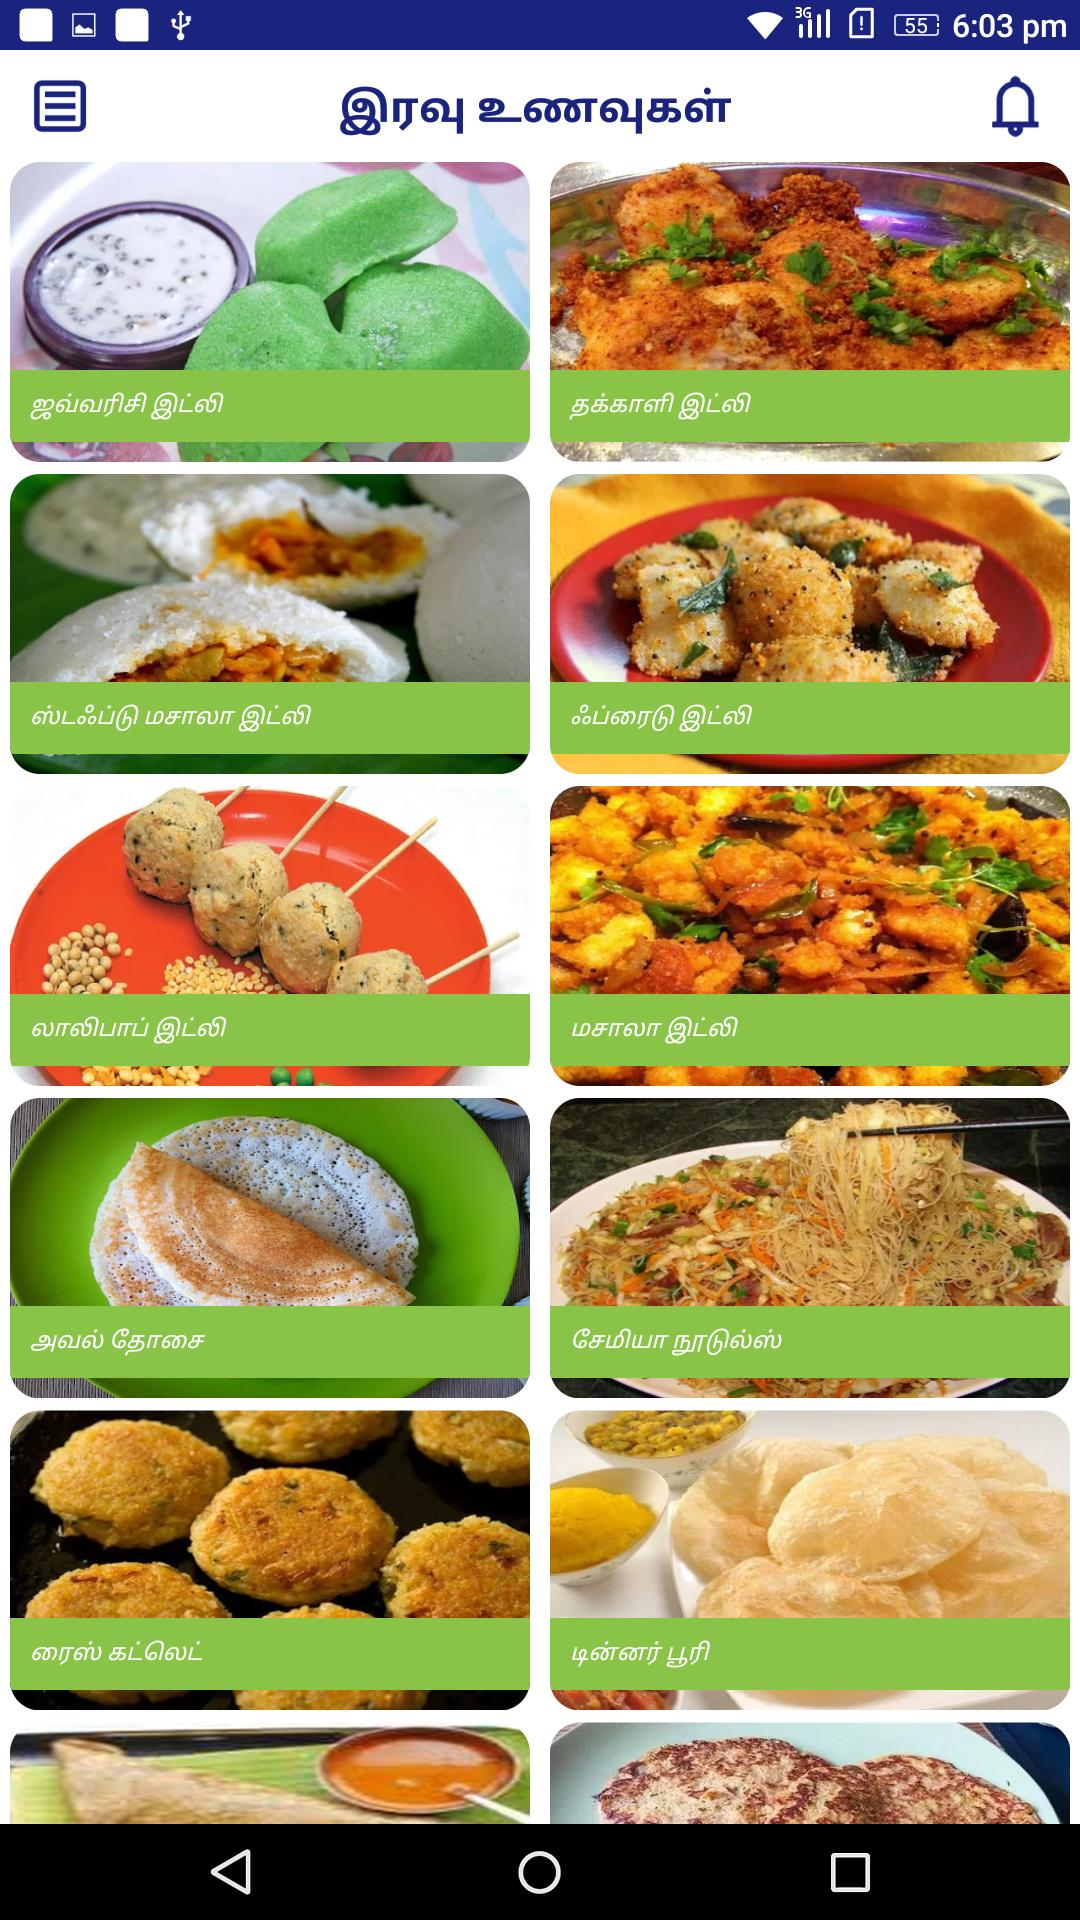 Dinner Recipes & Tips in Tamil for Android - APK Download